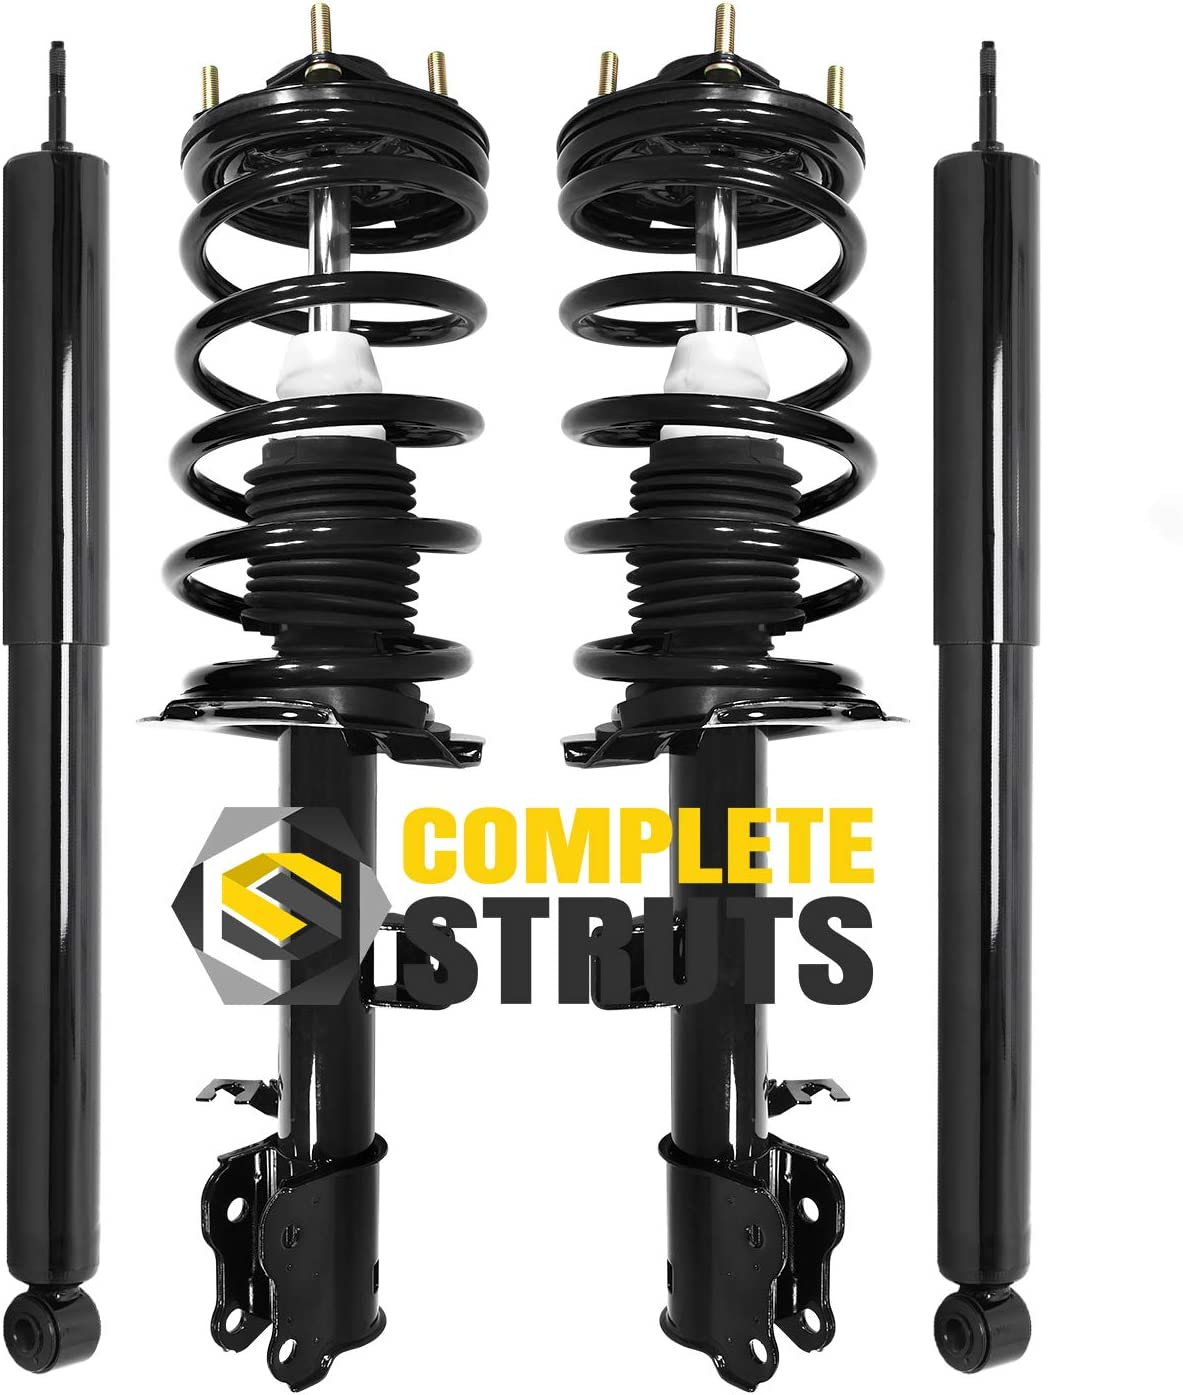 Front Quick Complete Strut Assemblies /& Rear Bare Shock Absorbers Compatible with 2001-2007 Ford Escape Set of 4